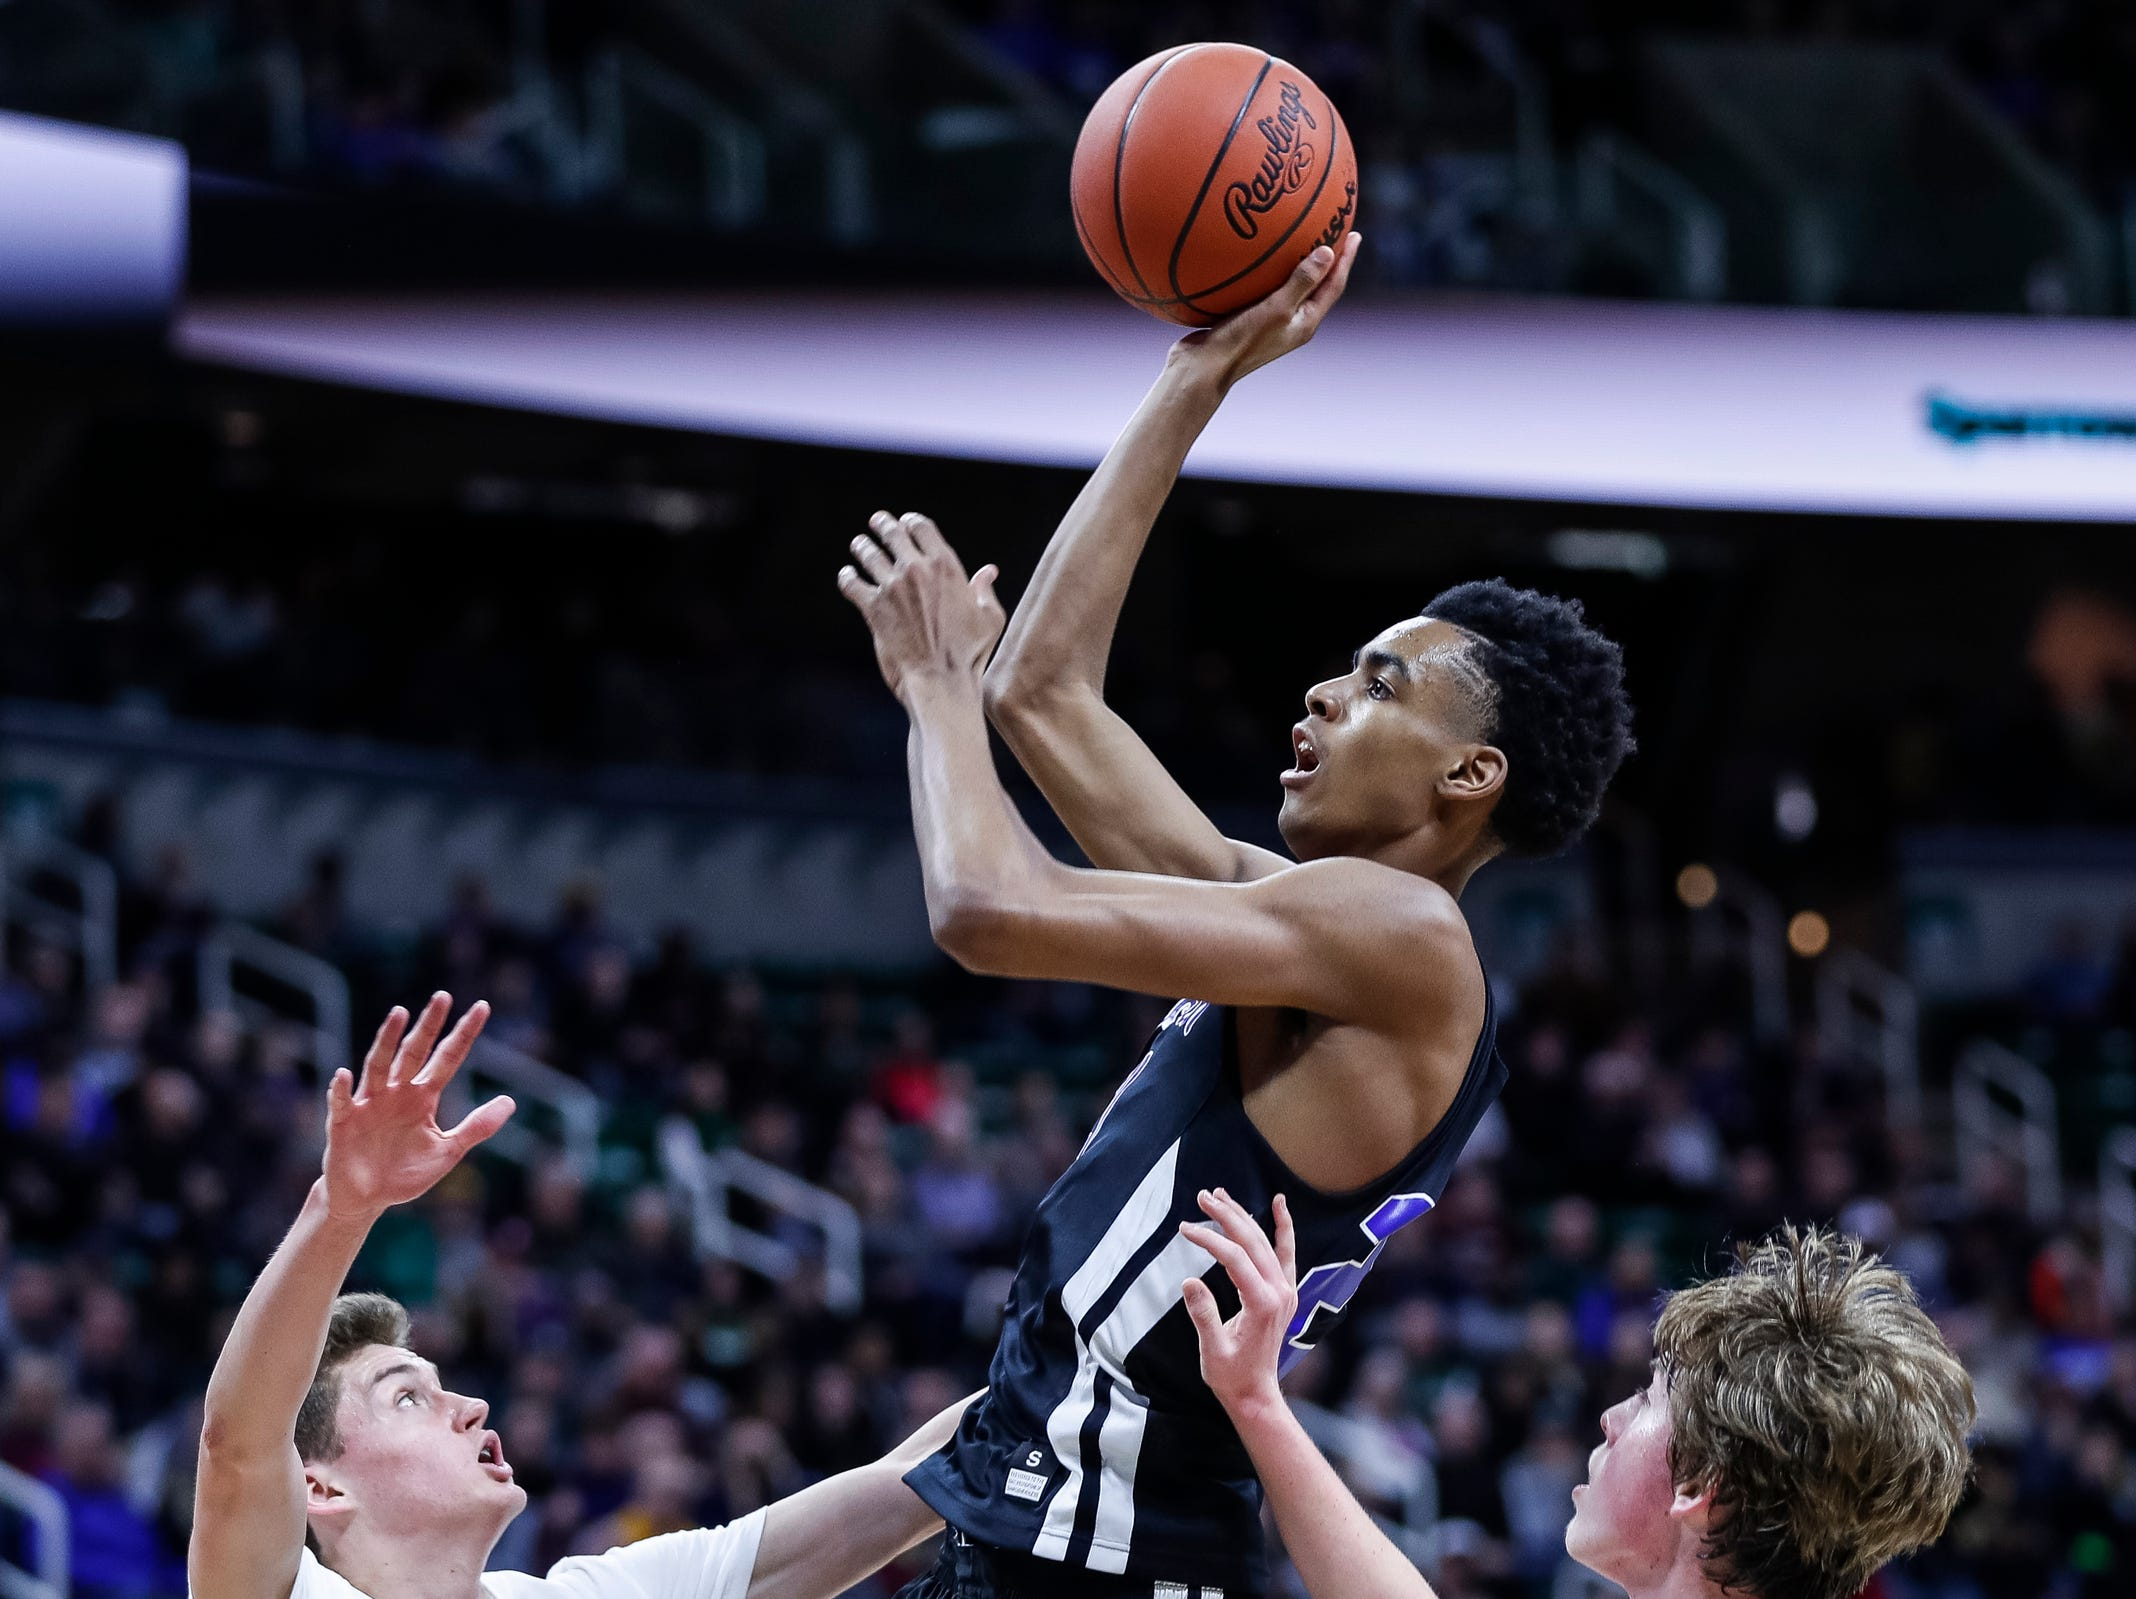 Ypsilanti Lincoln's Emoni Bates (21) shoots against Howell during the first half of MHSAA Division 1 semifinal at the Breslin Center in East Lansing, Friday, March 15, 2019.